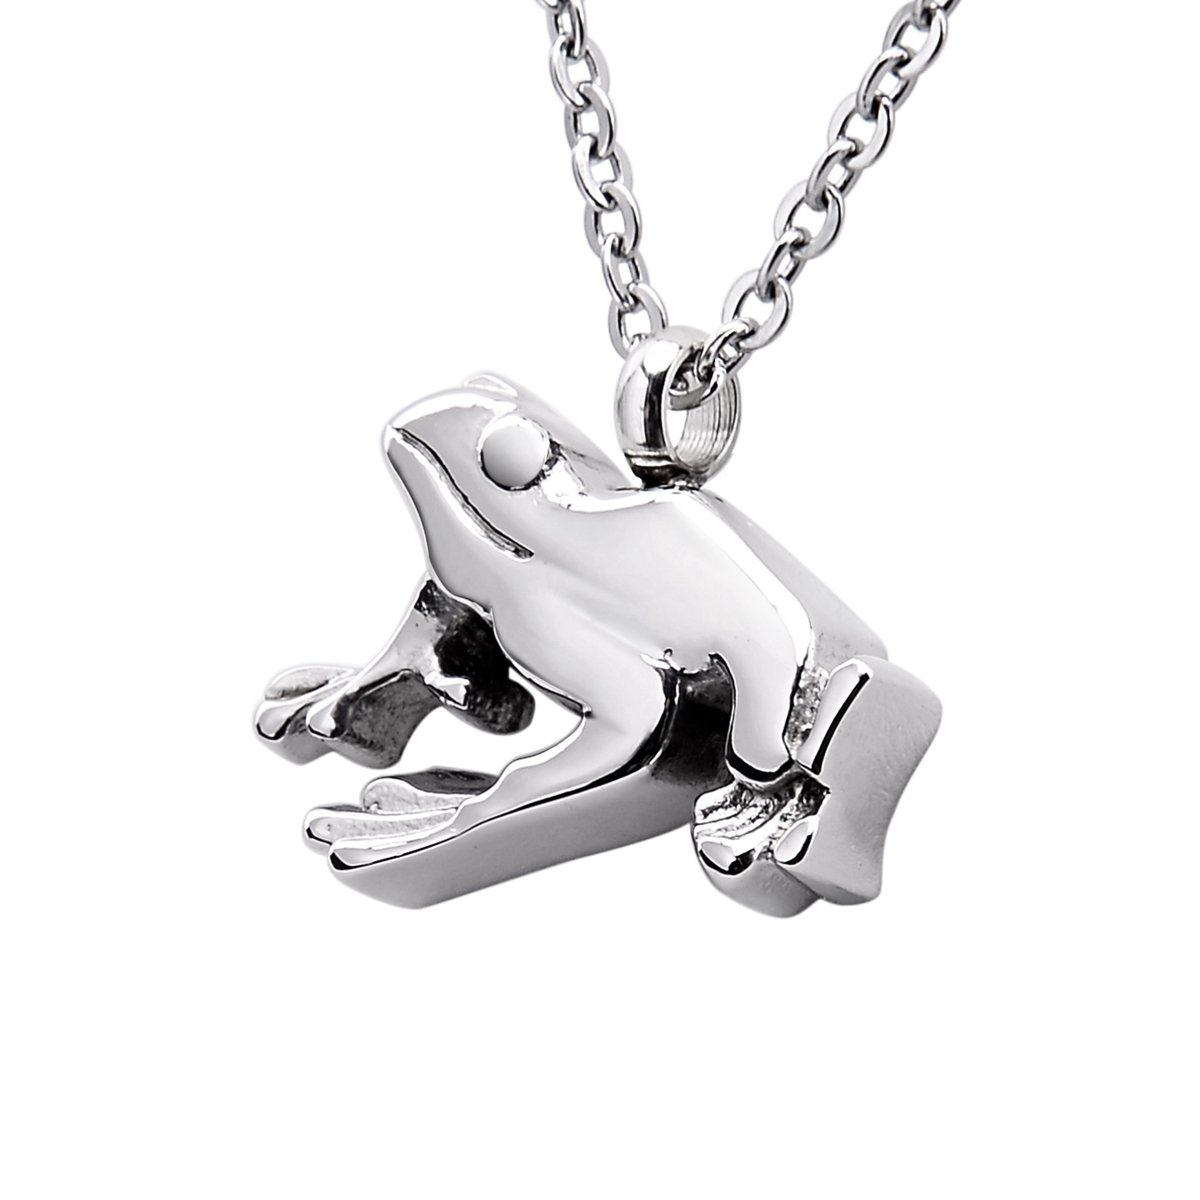 B&Y Frog Cremation Ashes Urn Necklace Memorial Pendant Stainless Steel Waterproof Jewelry (Frog)